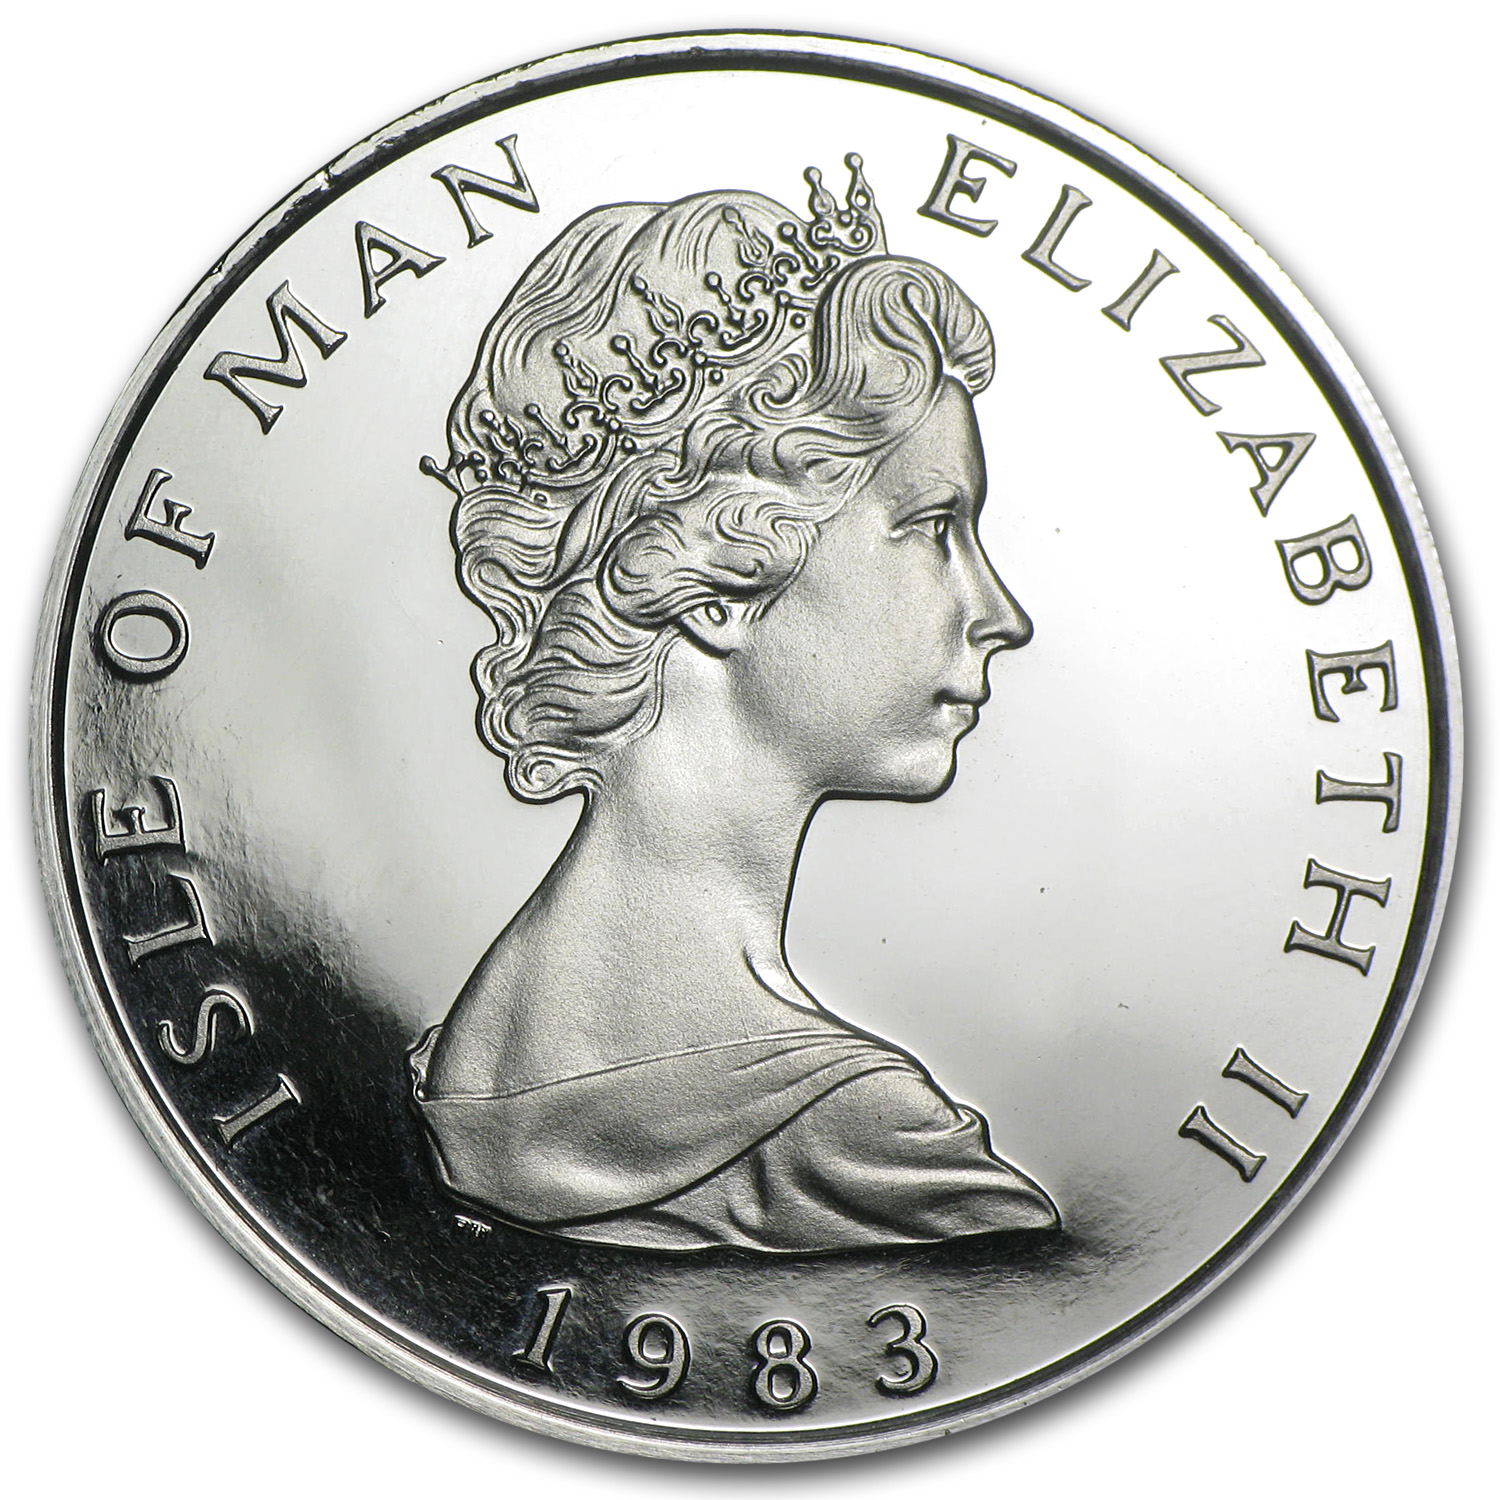 1983 1 oz Isle of Man Platinum Noble Proof